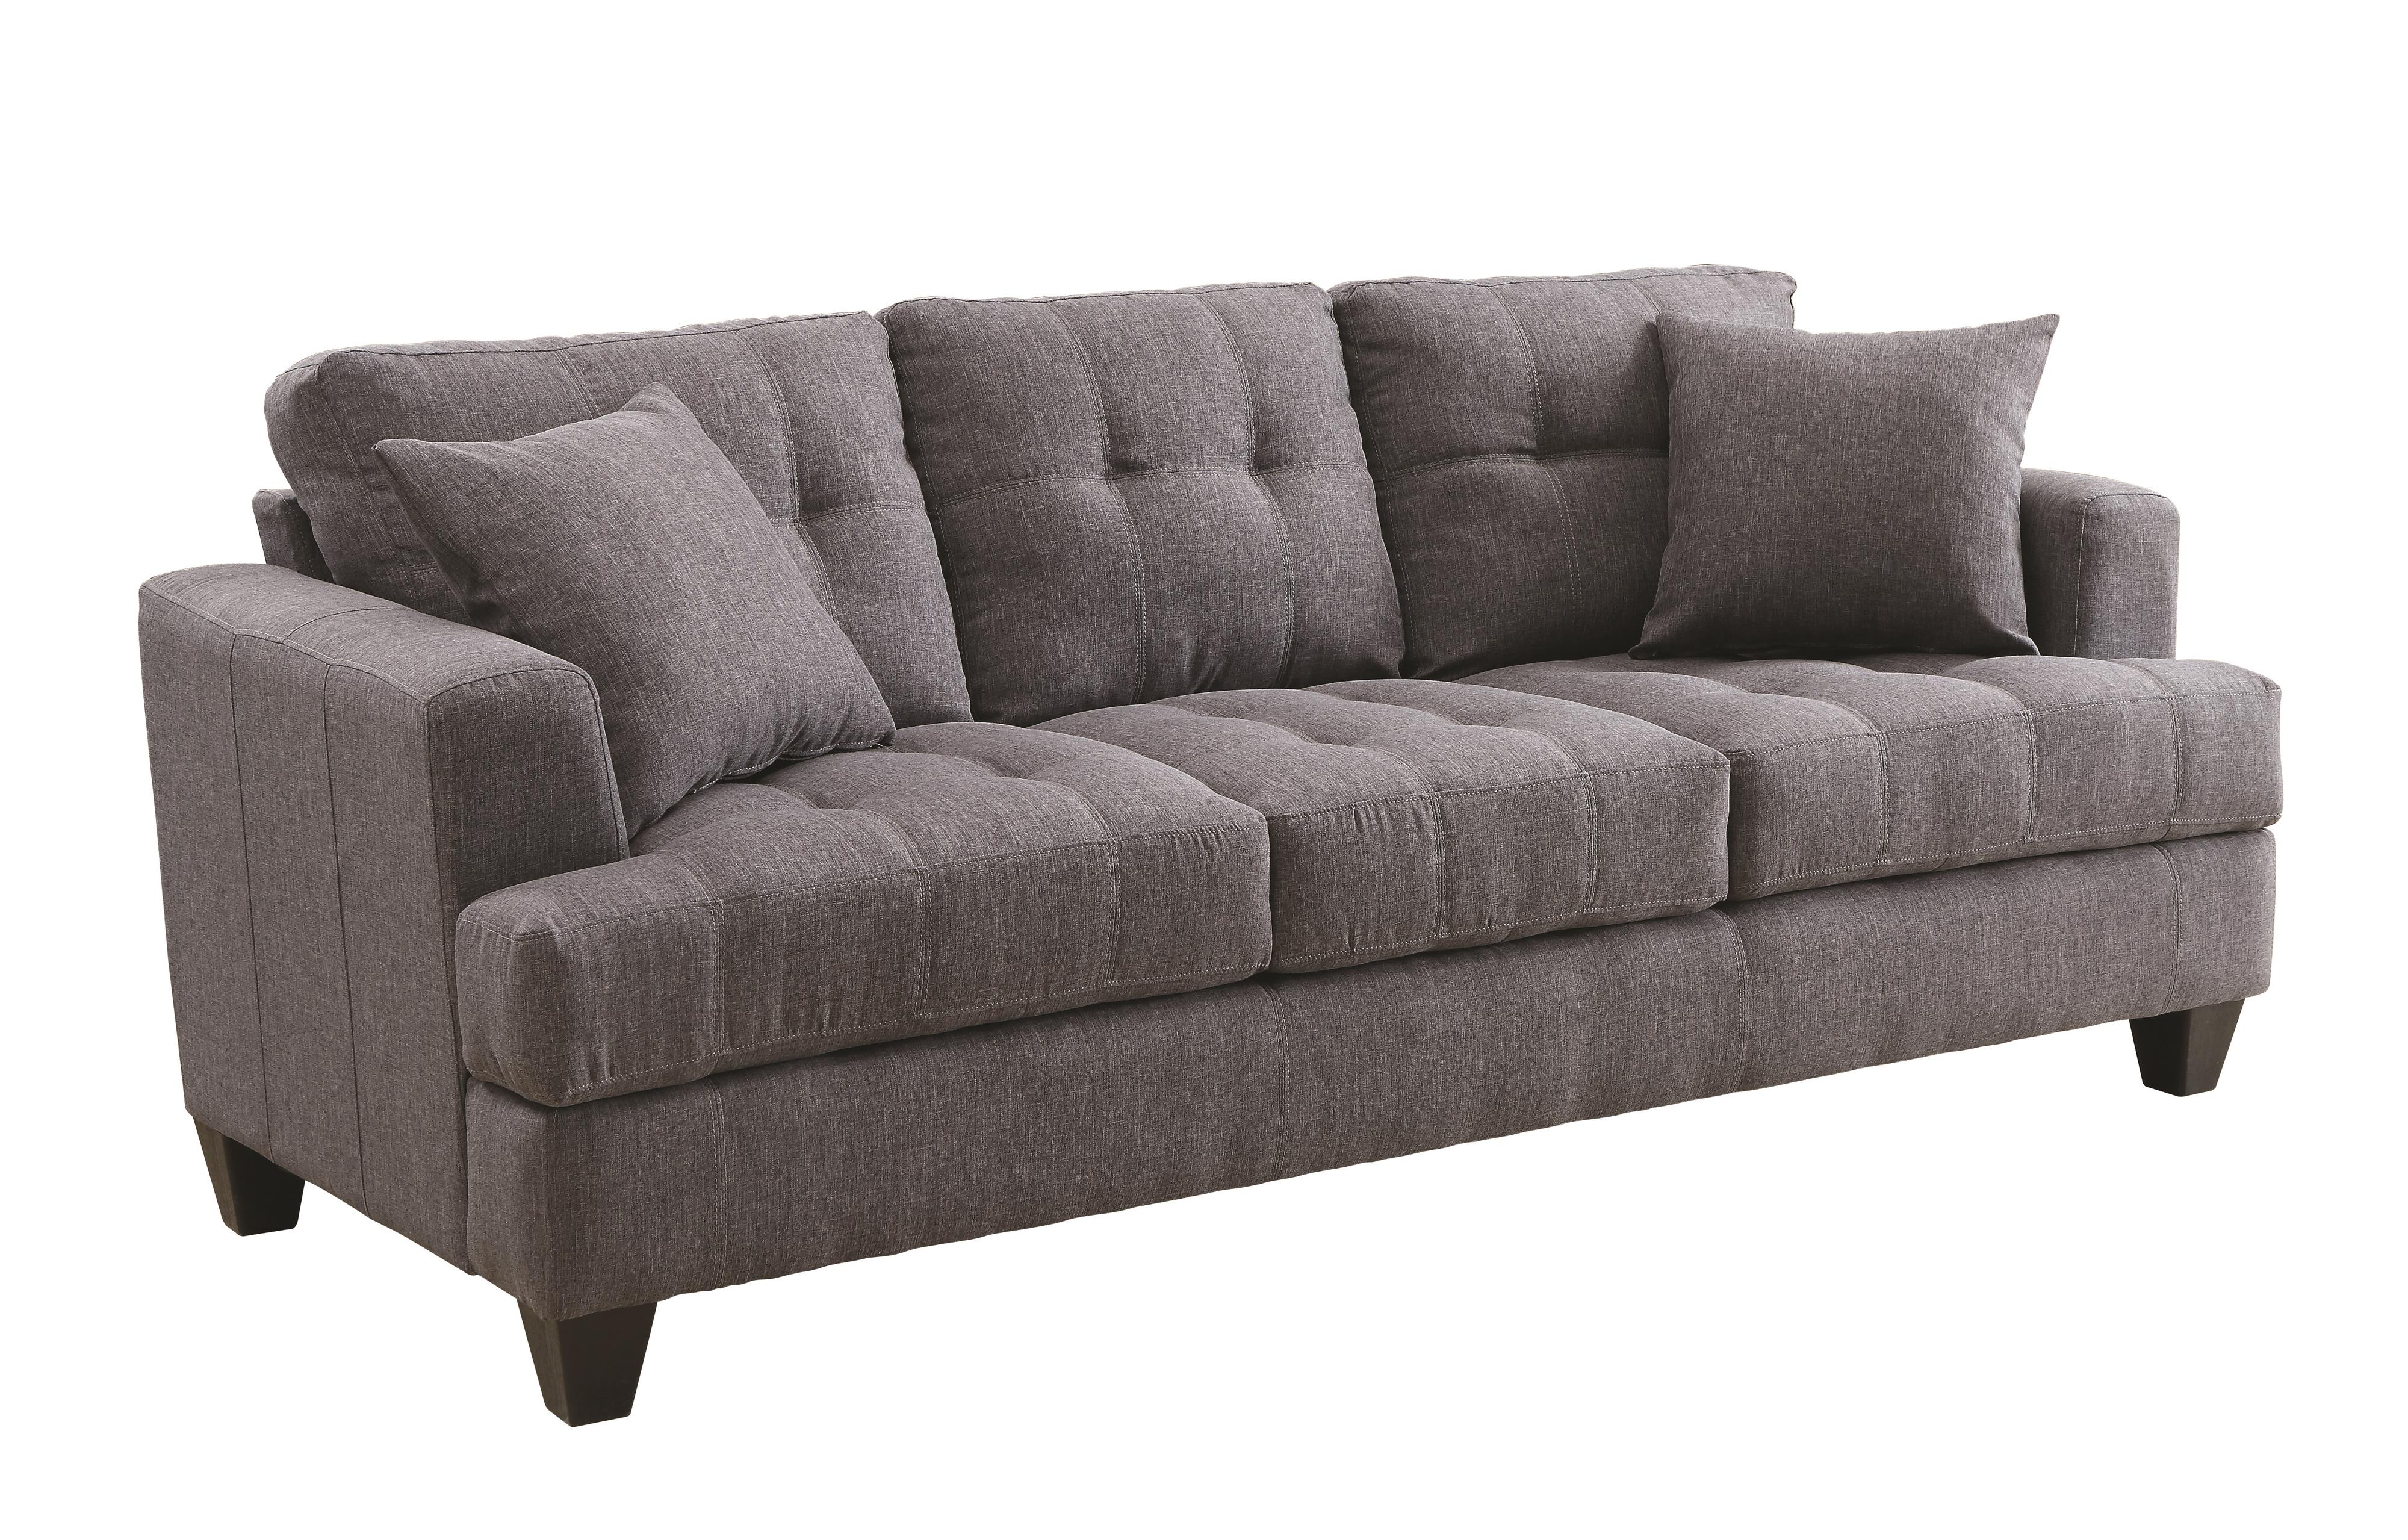 Samuel sofa sofa with tufted cushions quality furniture for Affordable quality furniture